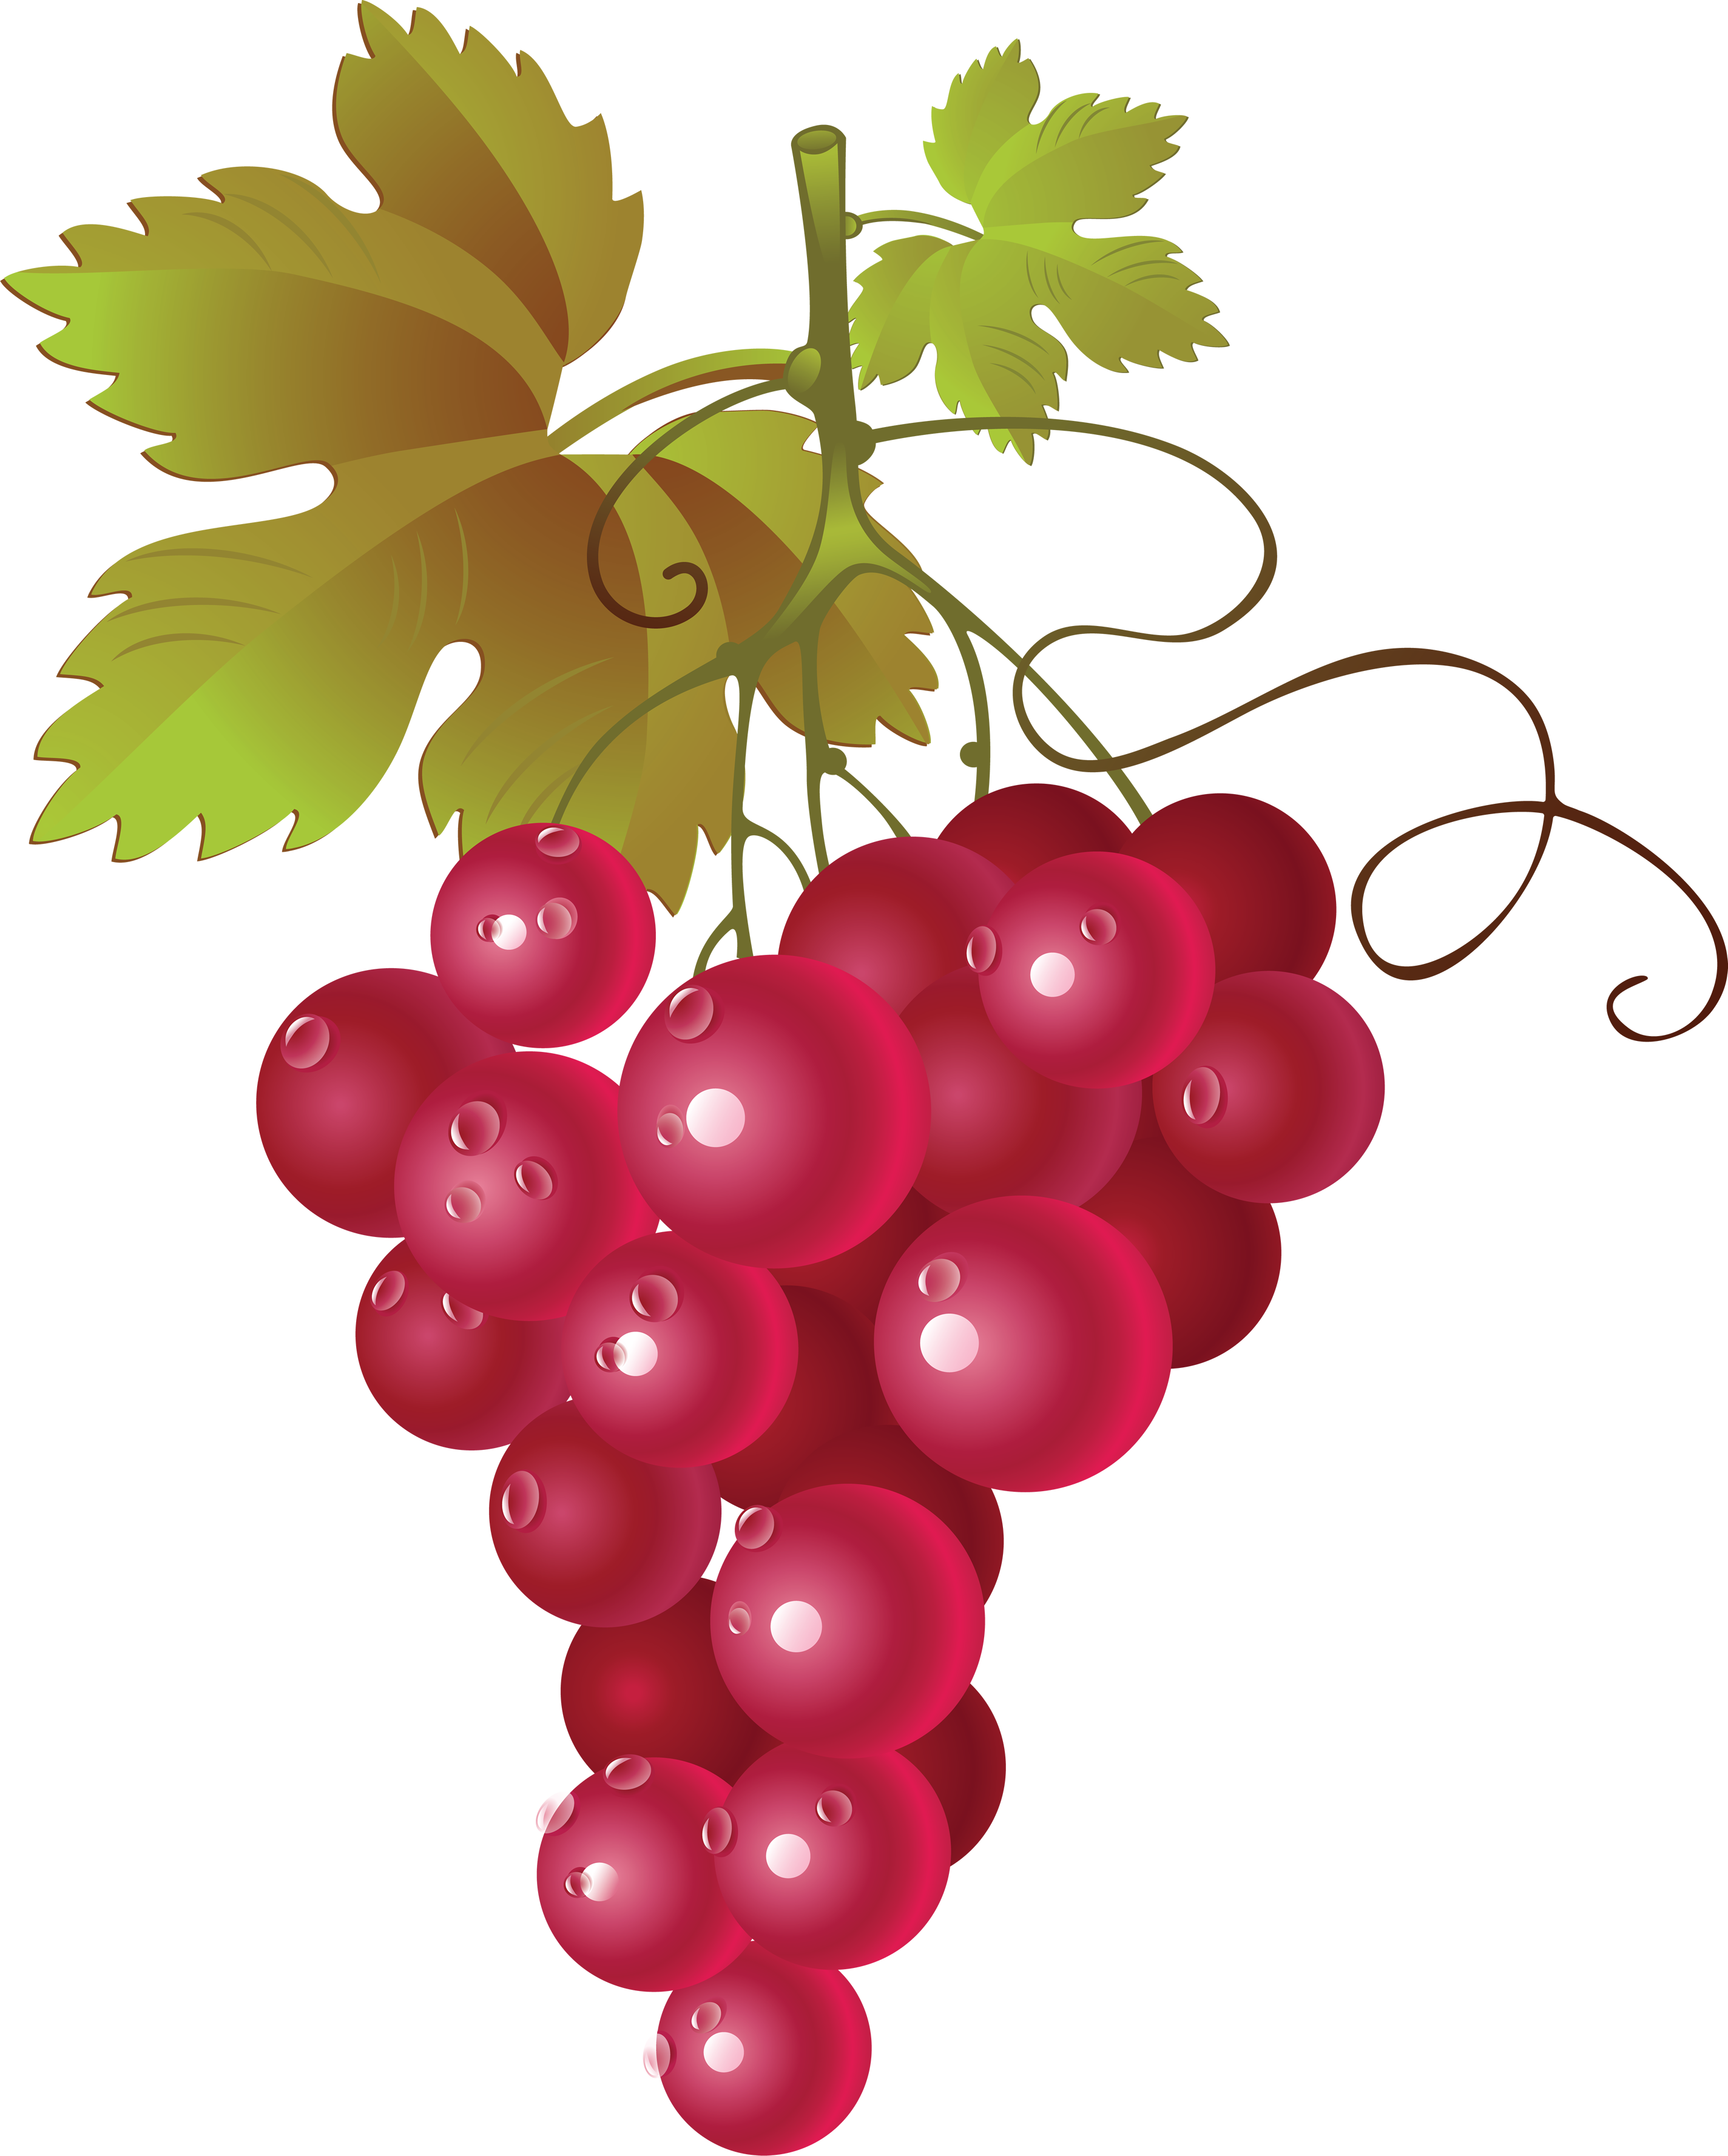 Png image free picture. 2 clipart grape